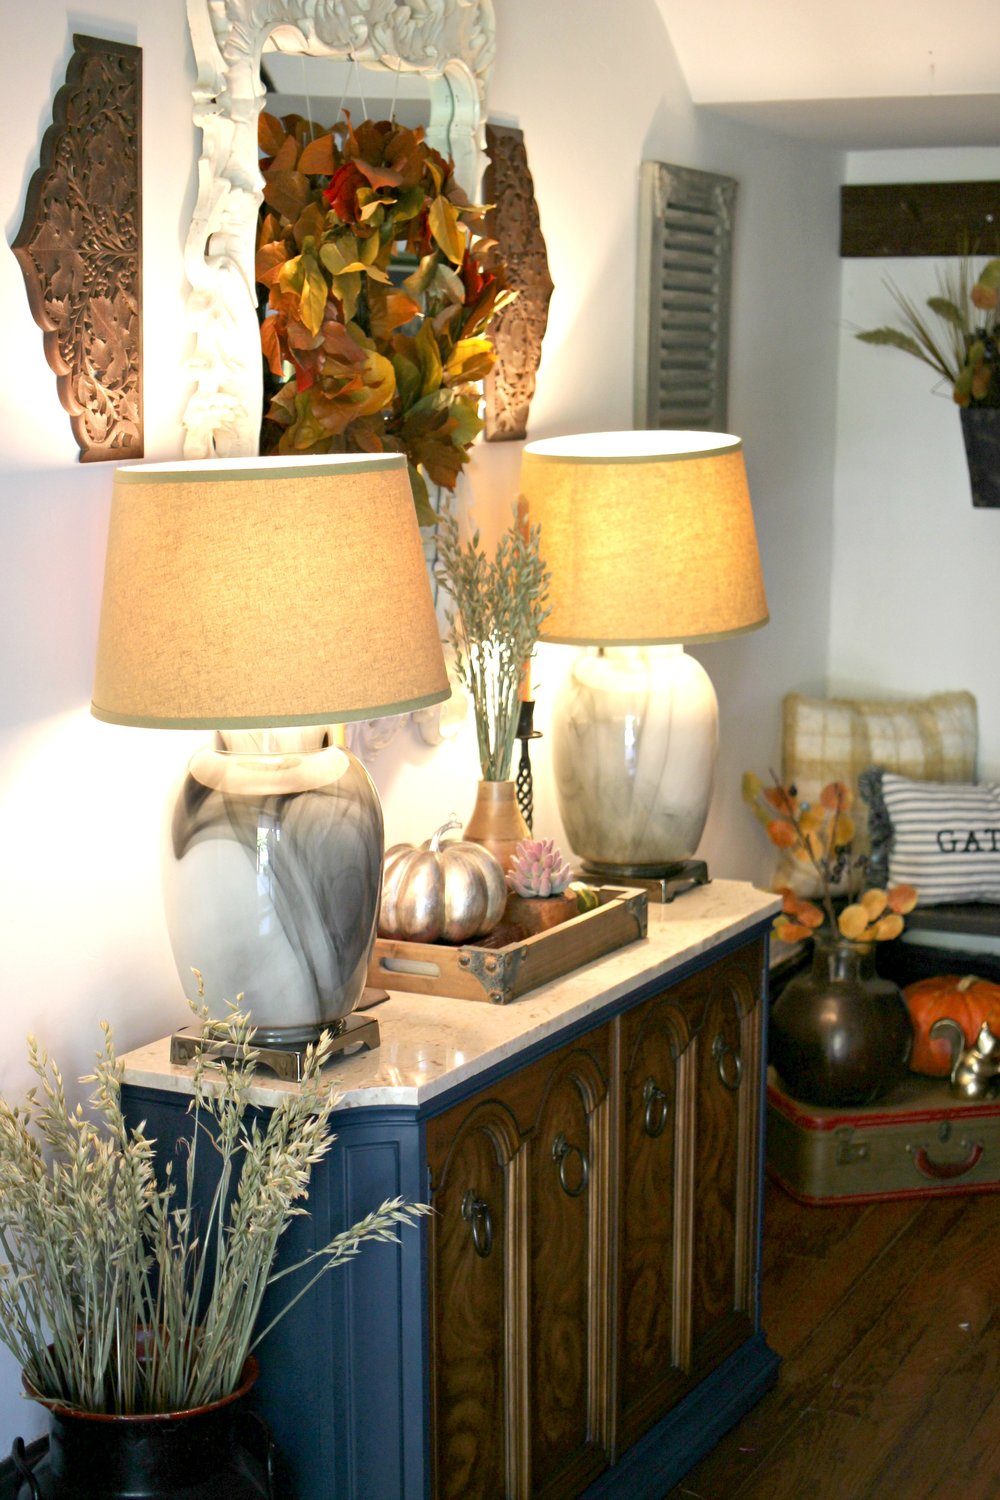 Fall leaf wreath: Trader Joe's   |    Wheat bundles: Gathered Living (linked above)   |    Lamps: thrifted   |    Tray:  Homegoods    |   Silver pumpkin:  Homegoods    |    Faux succulent: Target (linked above)